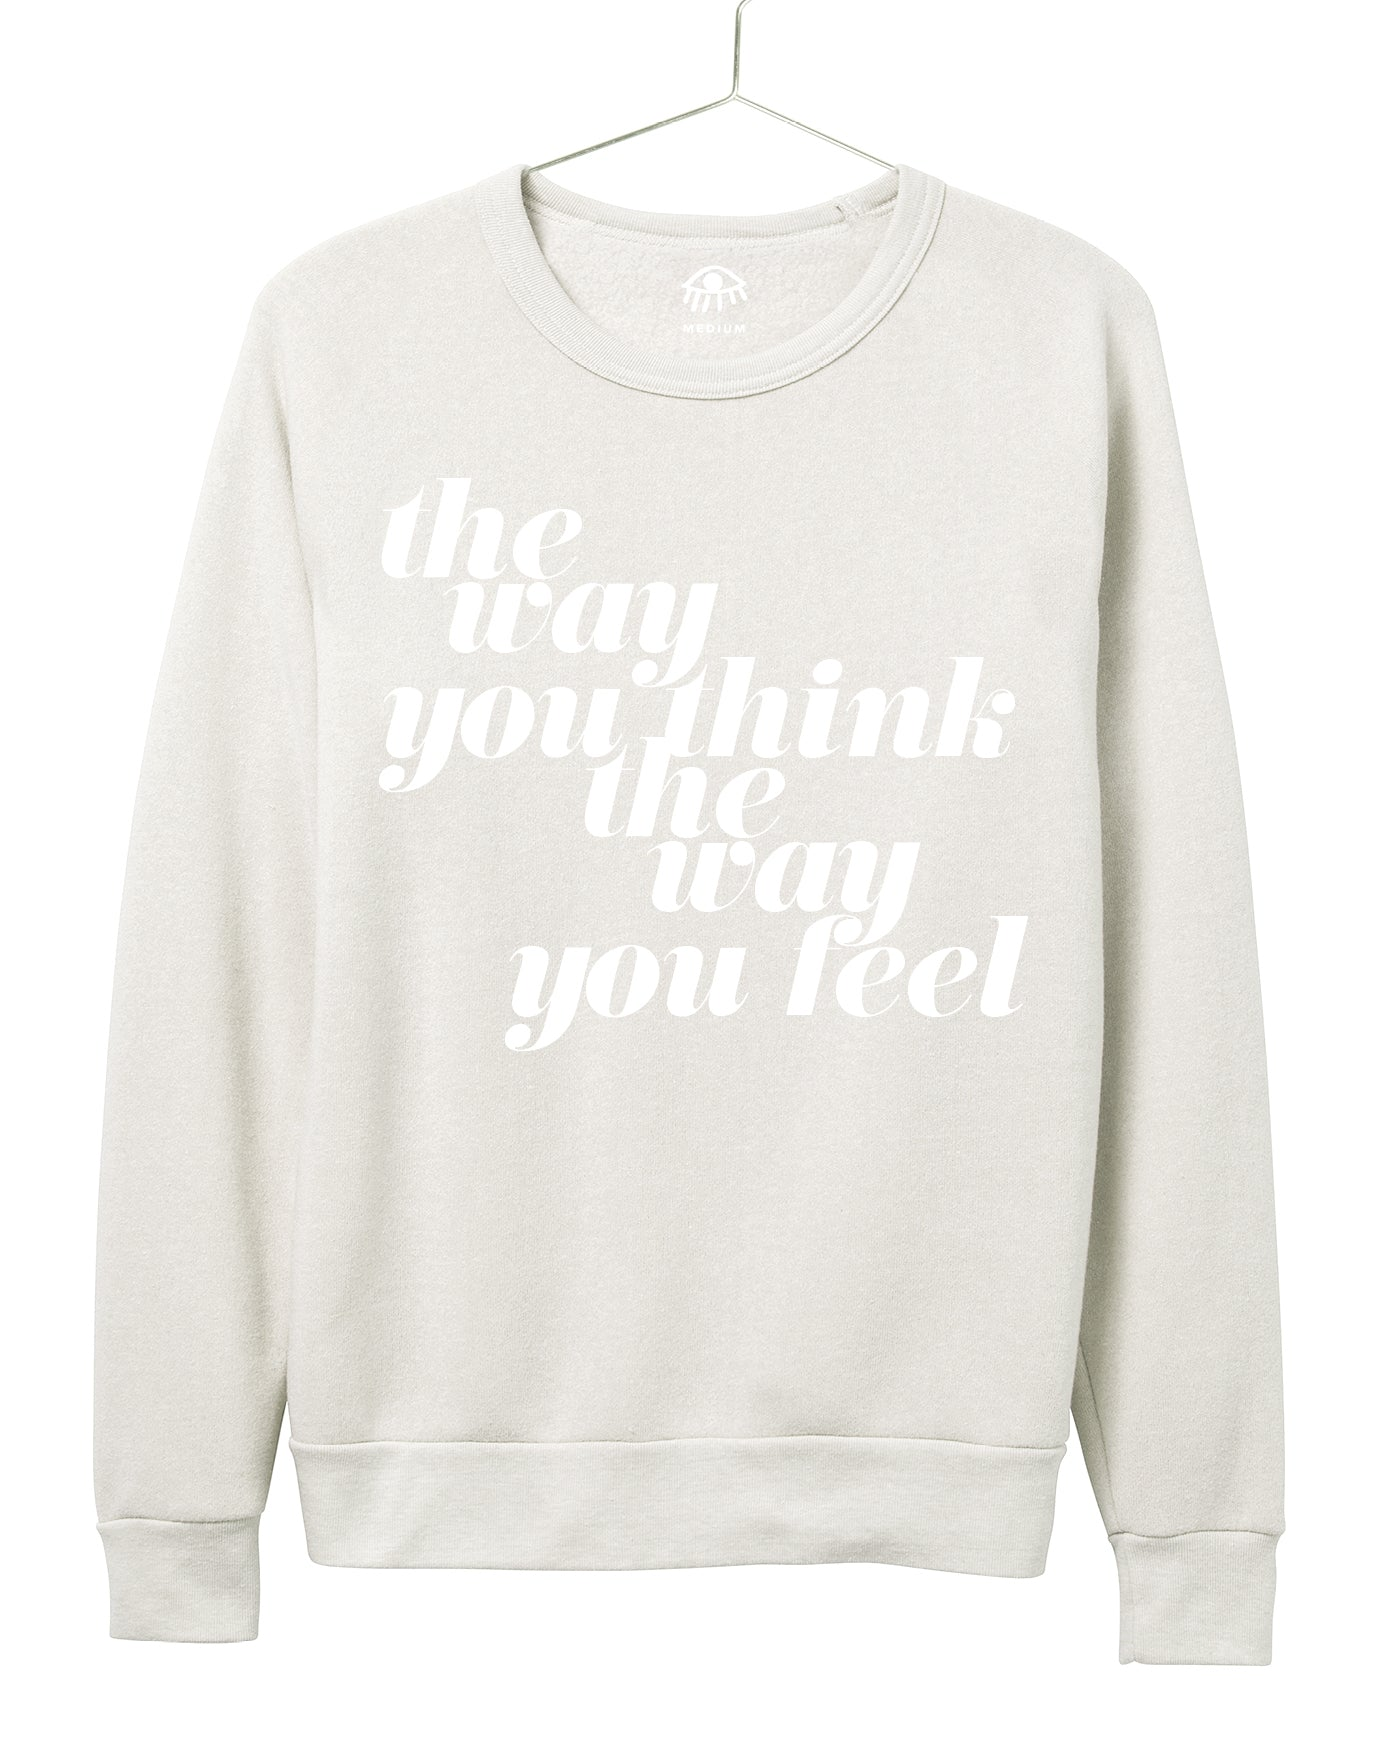 The way you think, the way you feel Women's Crewneck